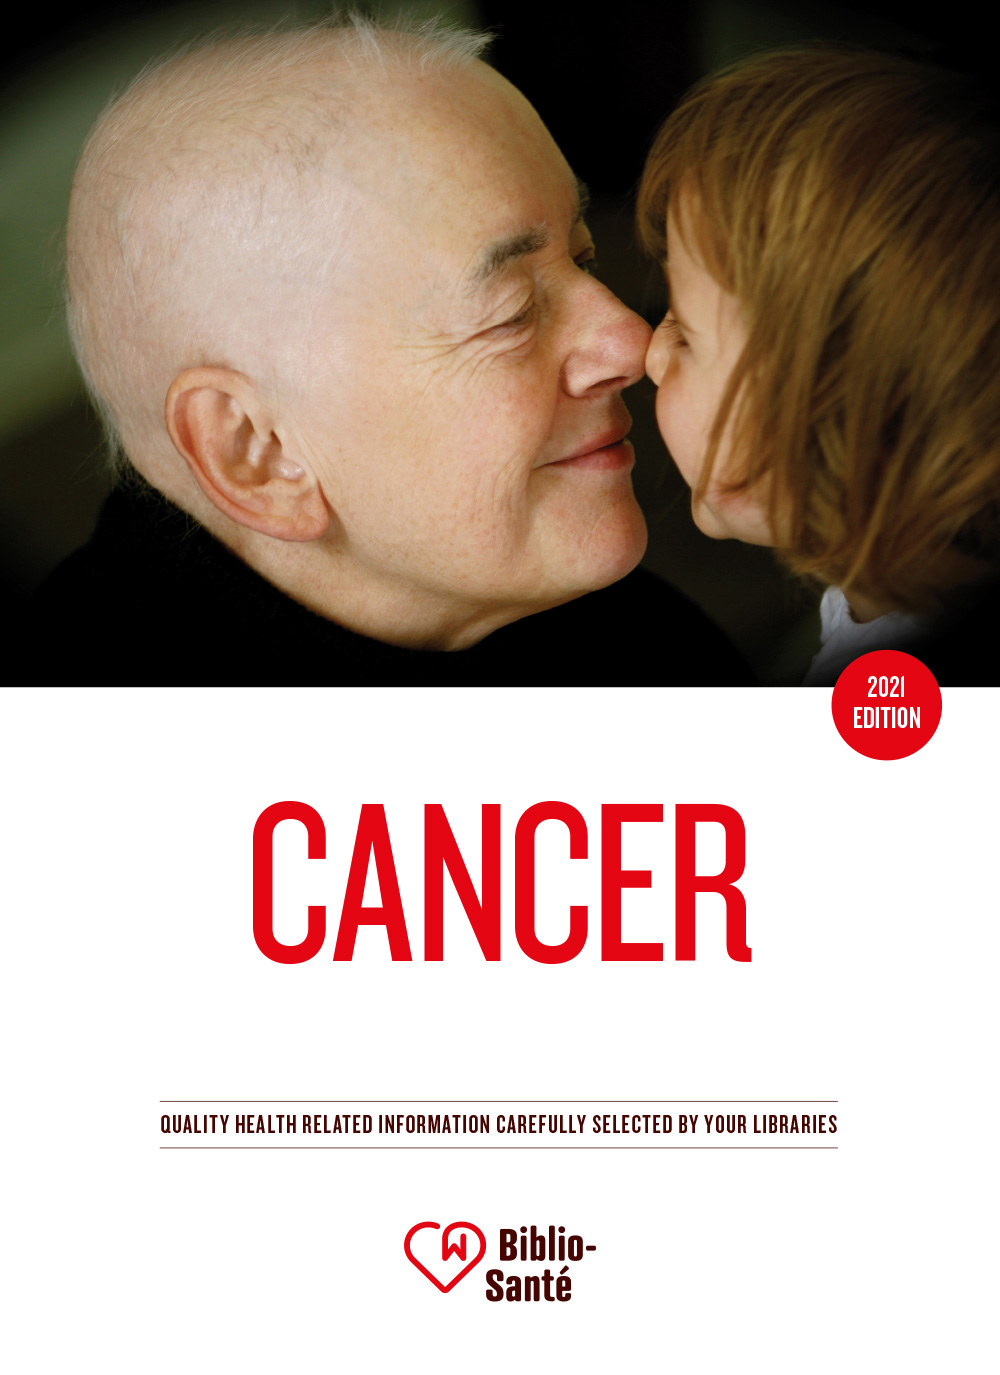 Cancer booklet